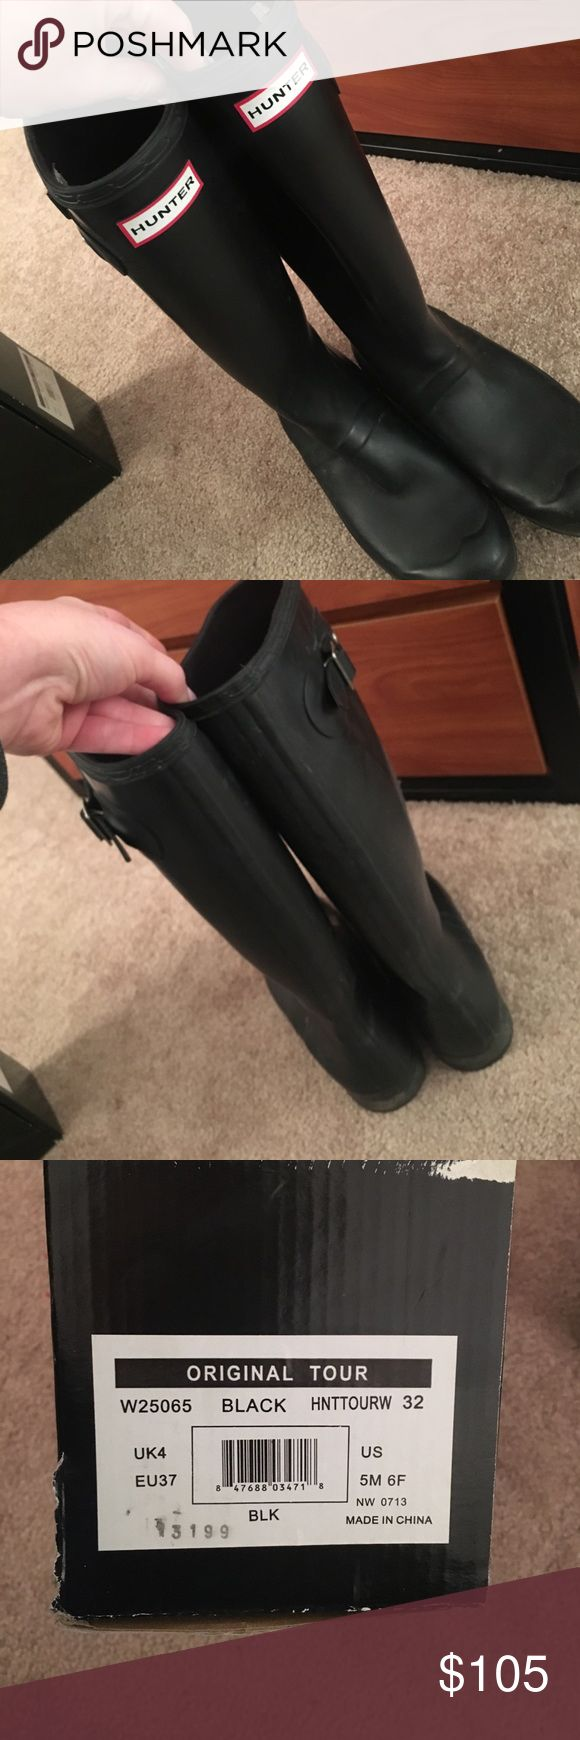 Tall hunter rain boot Black size 6, will include cream boot socks! Worn but still in perfect condition. I can send more pics if you'd like Hunter Boots Shoes Winter & Rain Boots